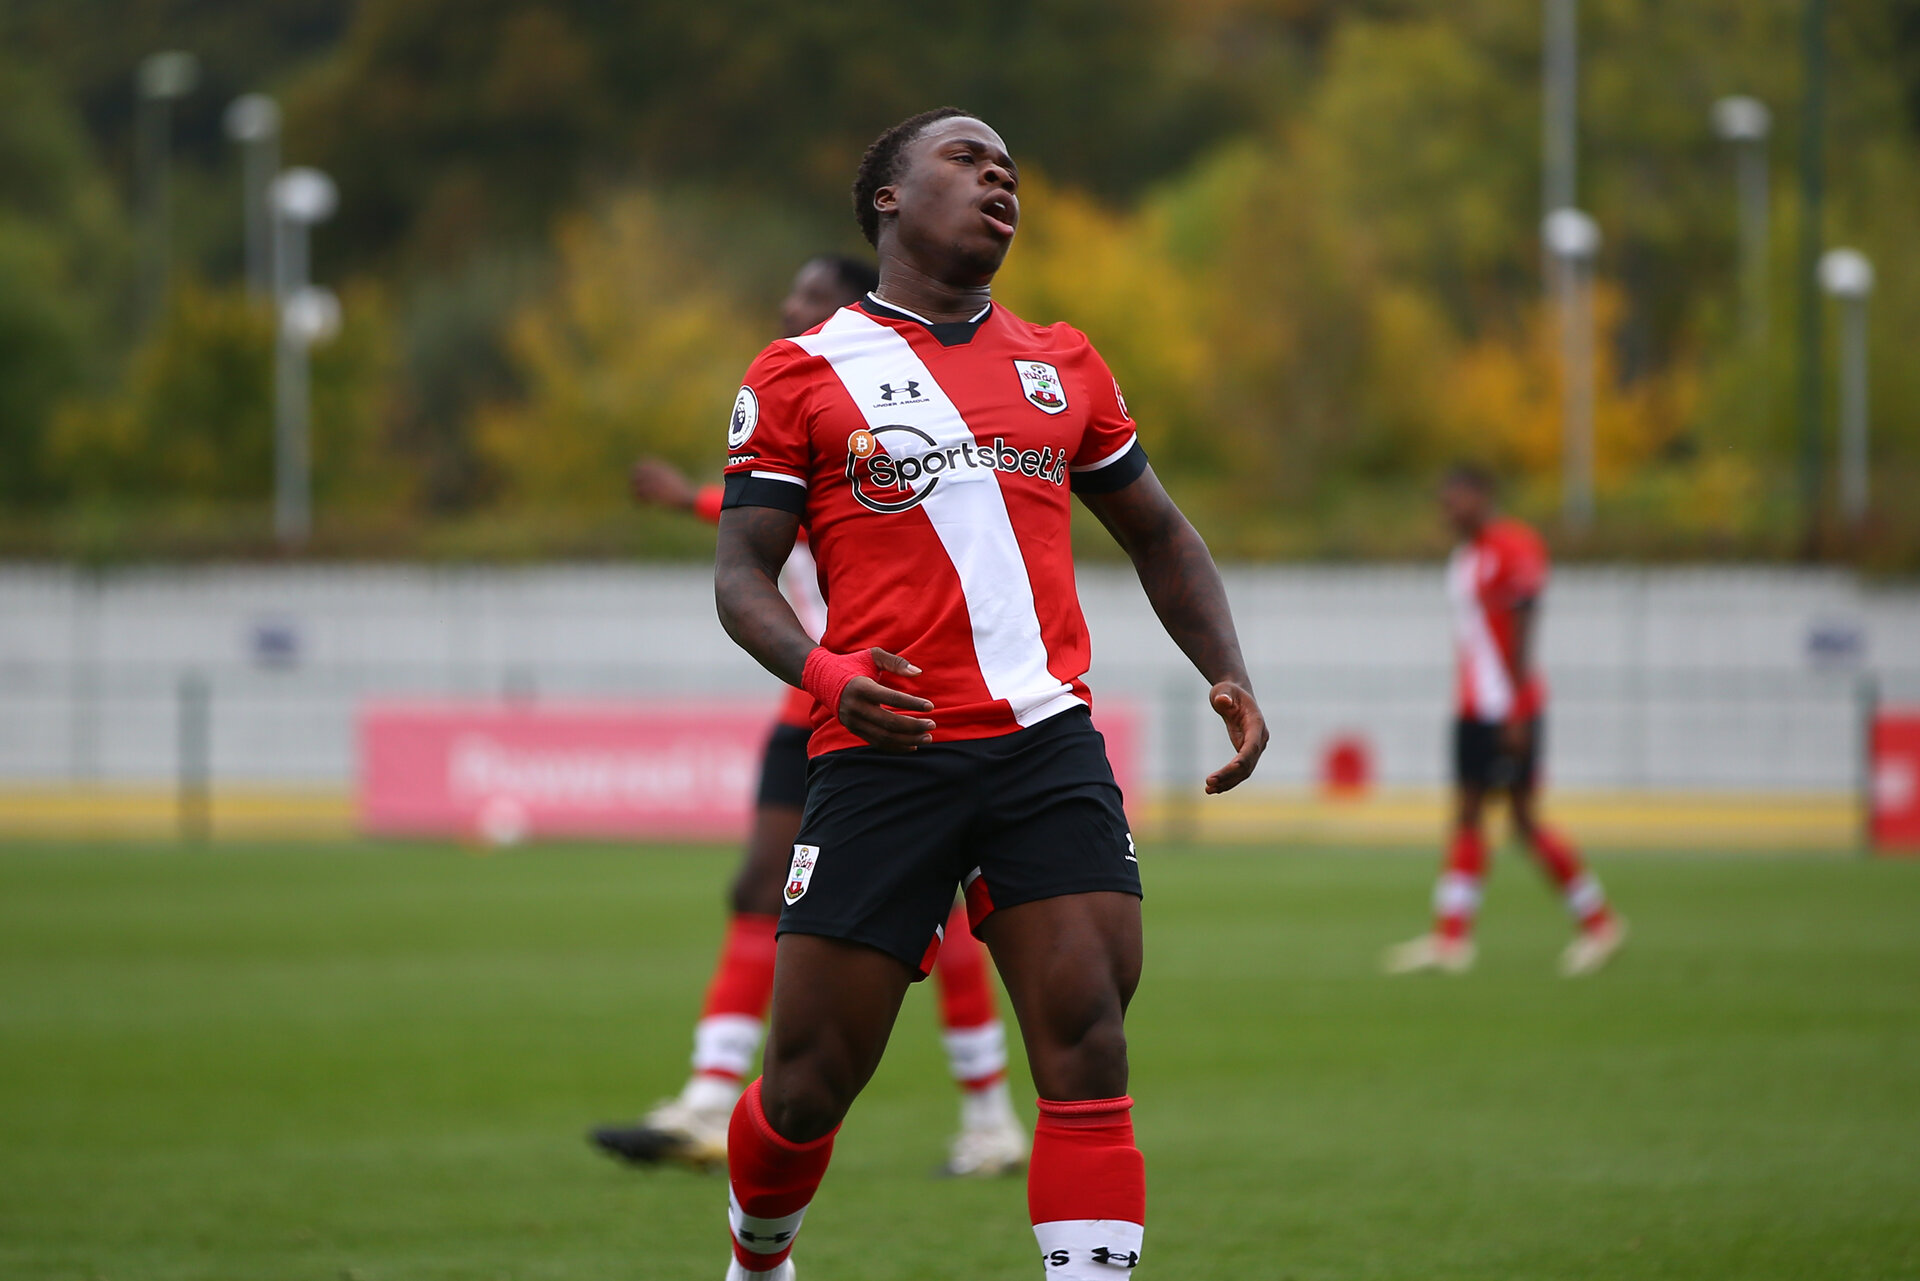 SOUTHAMPTON, ENGLAND - OCTOBER 18:  during the Premier League 2 match between Southampton FC B Team and Blackburn Rovers FC at Snows Stadium on October 18, 2020 in Southamtpon, United Kingdom. (Photo by Isabelle Field/Southampton FC via Getty Images)